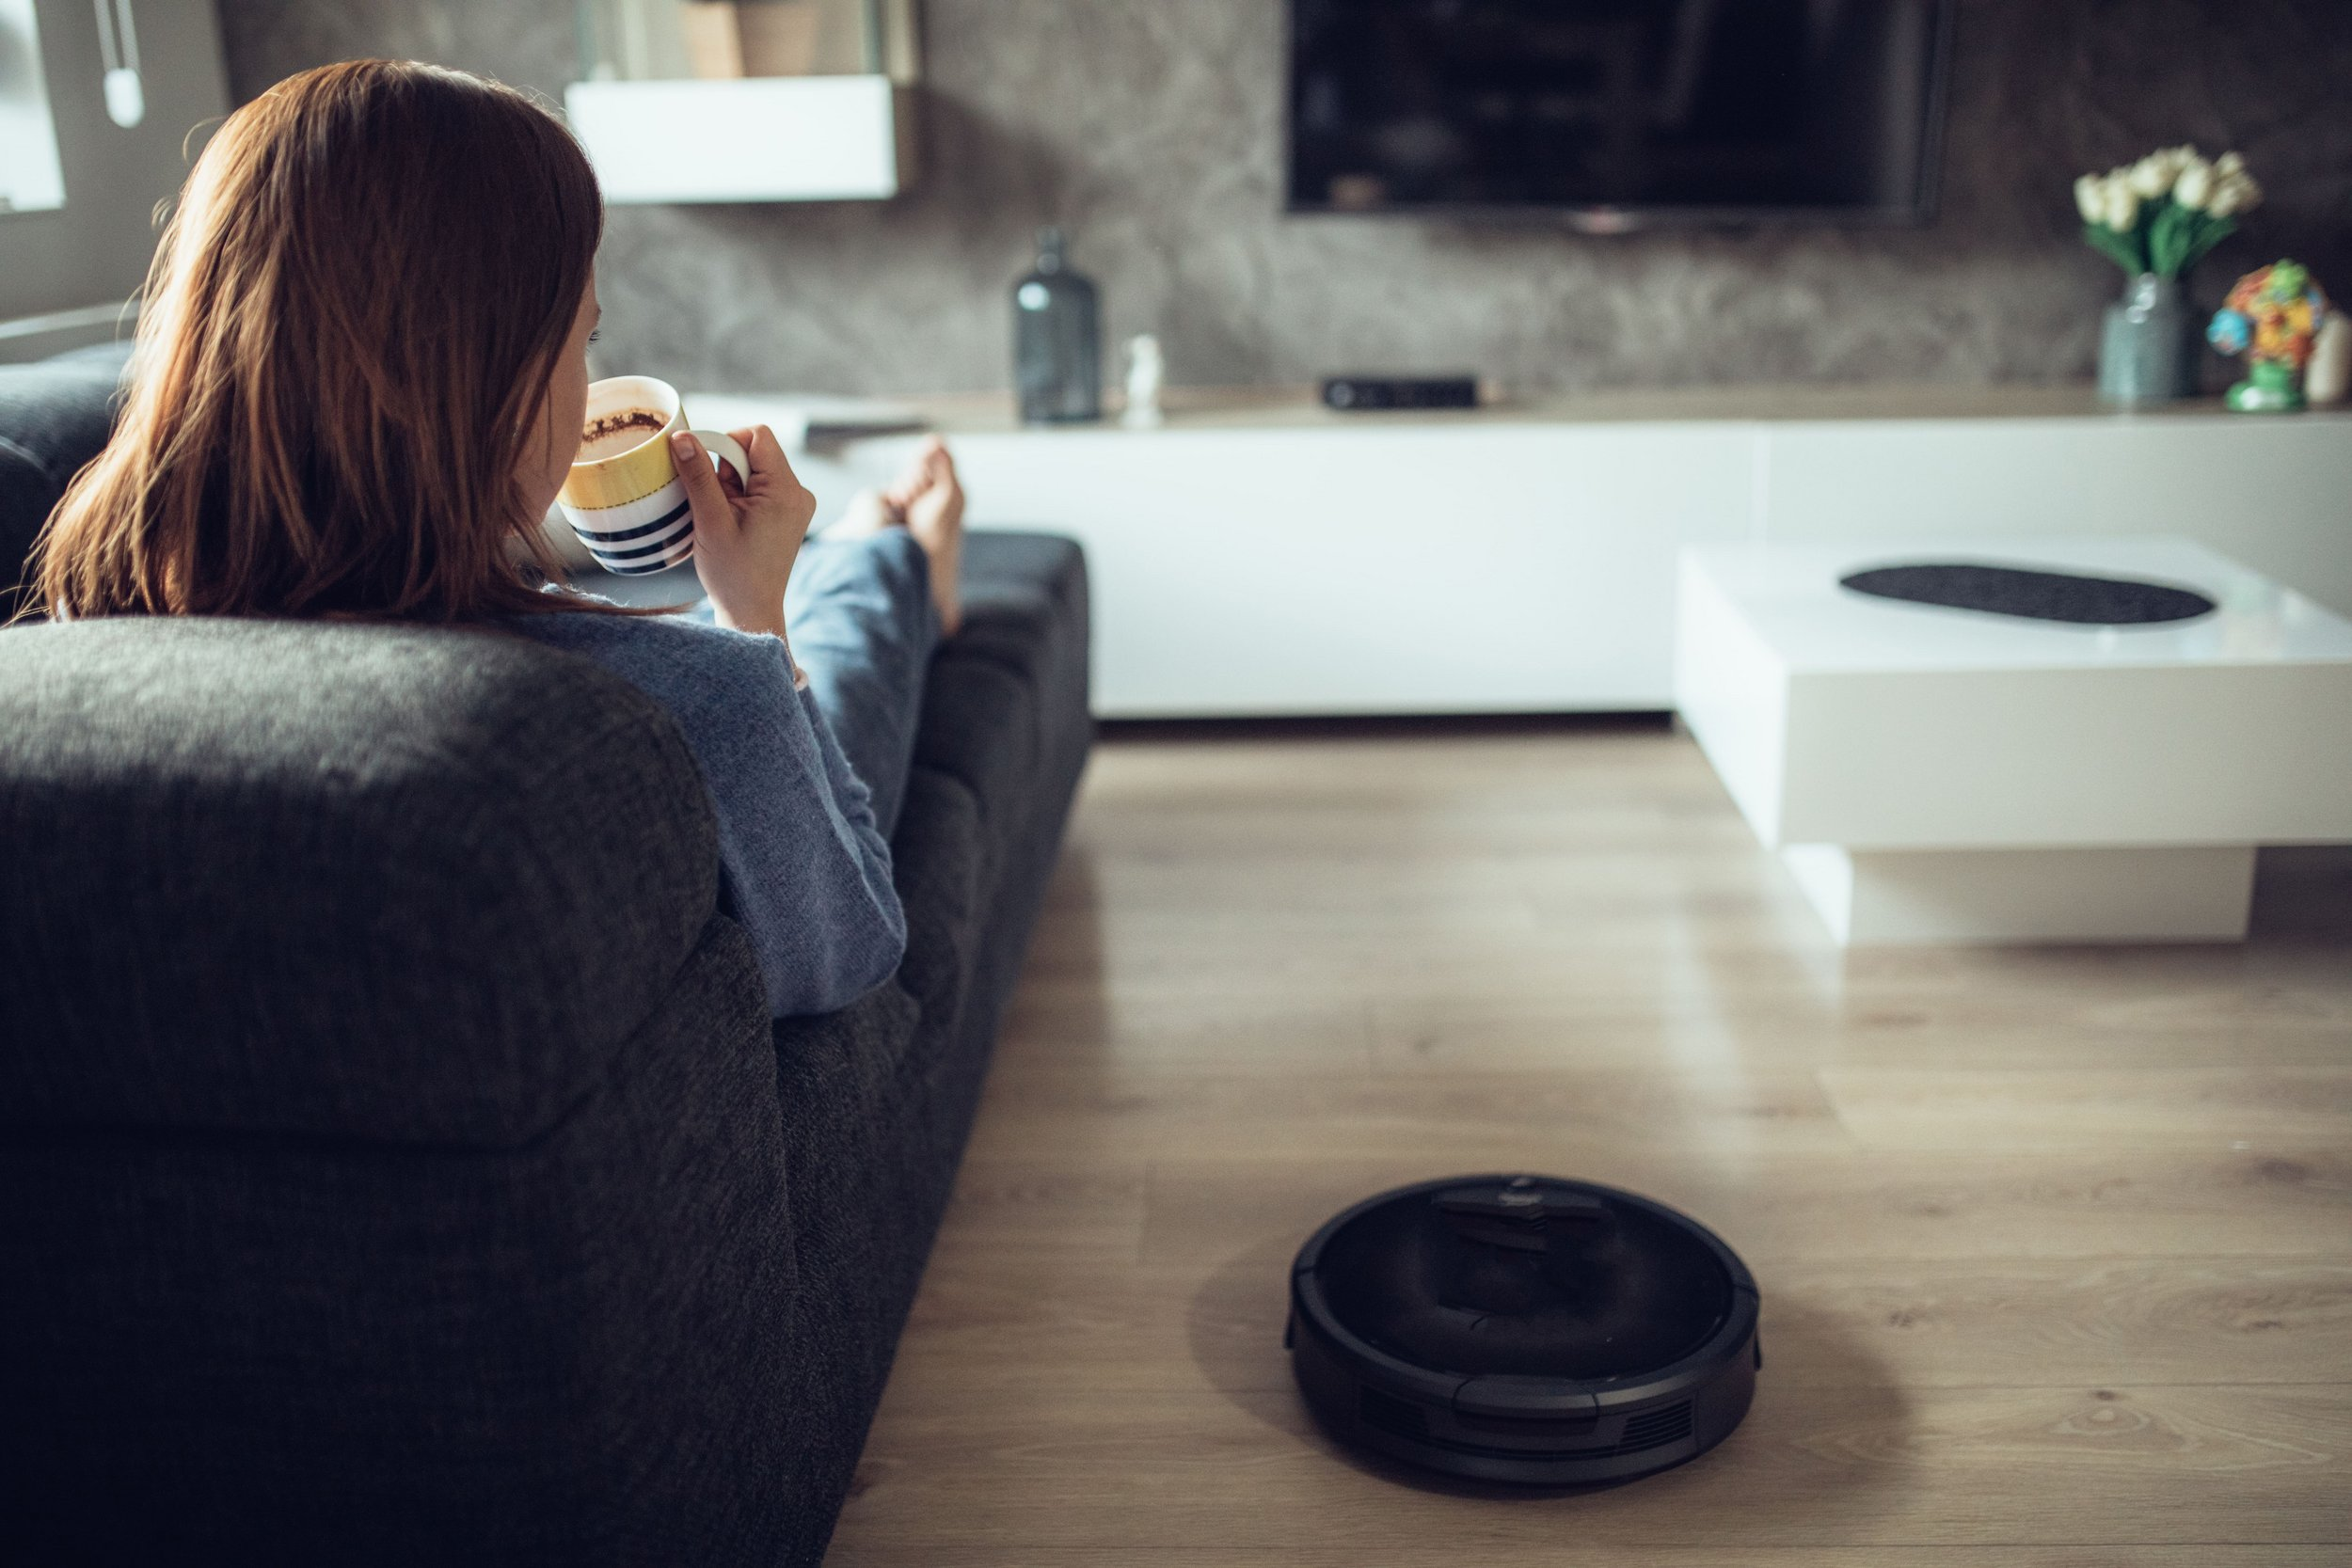 Woman relaxing on sofa next to vacuum cleaner robot